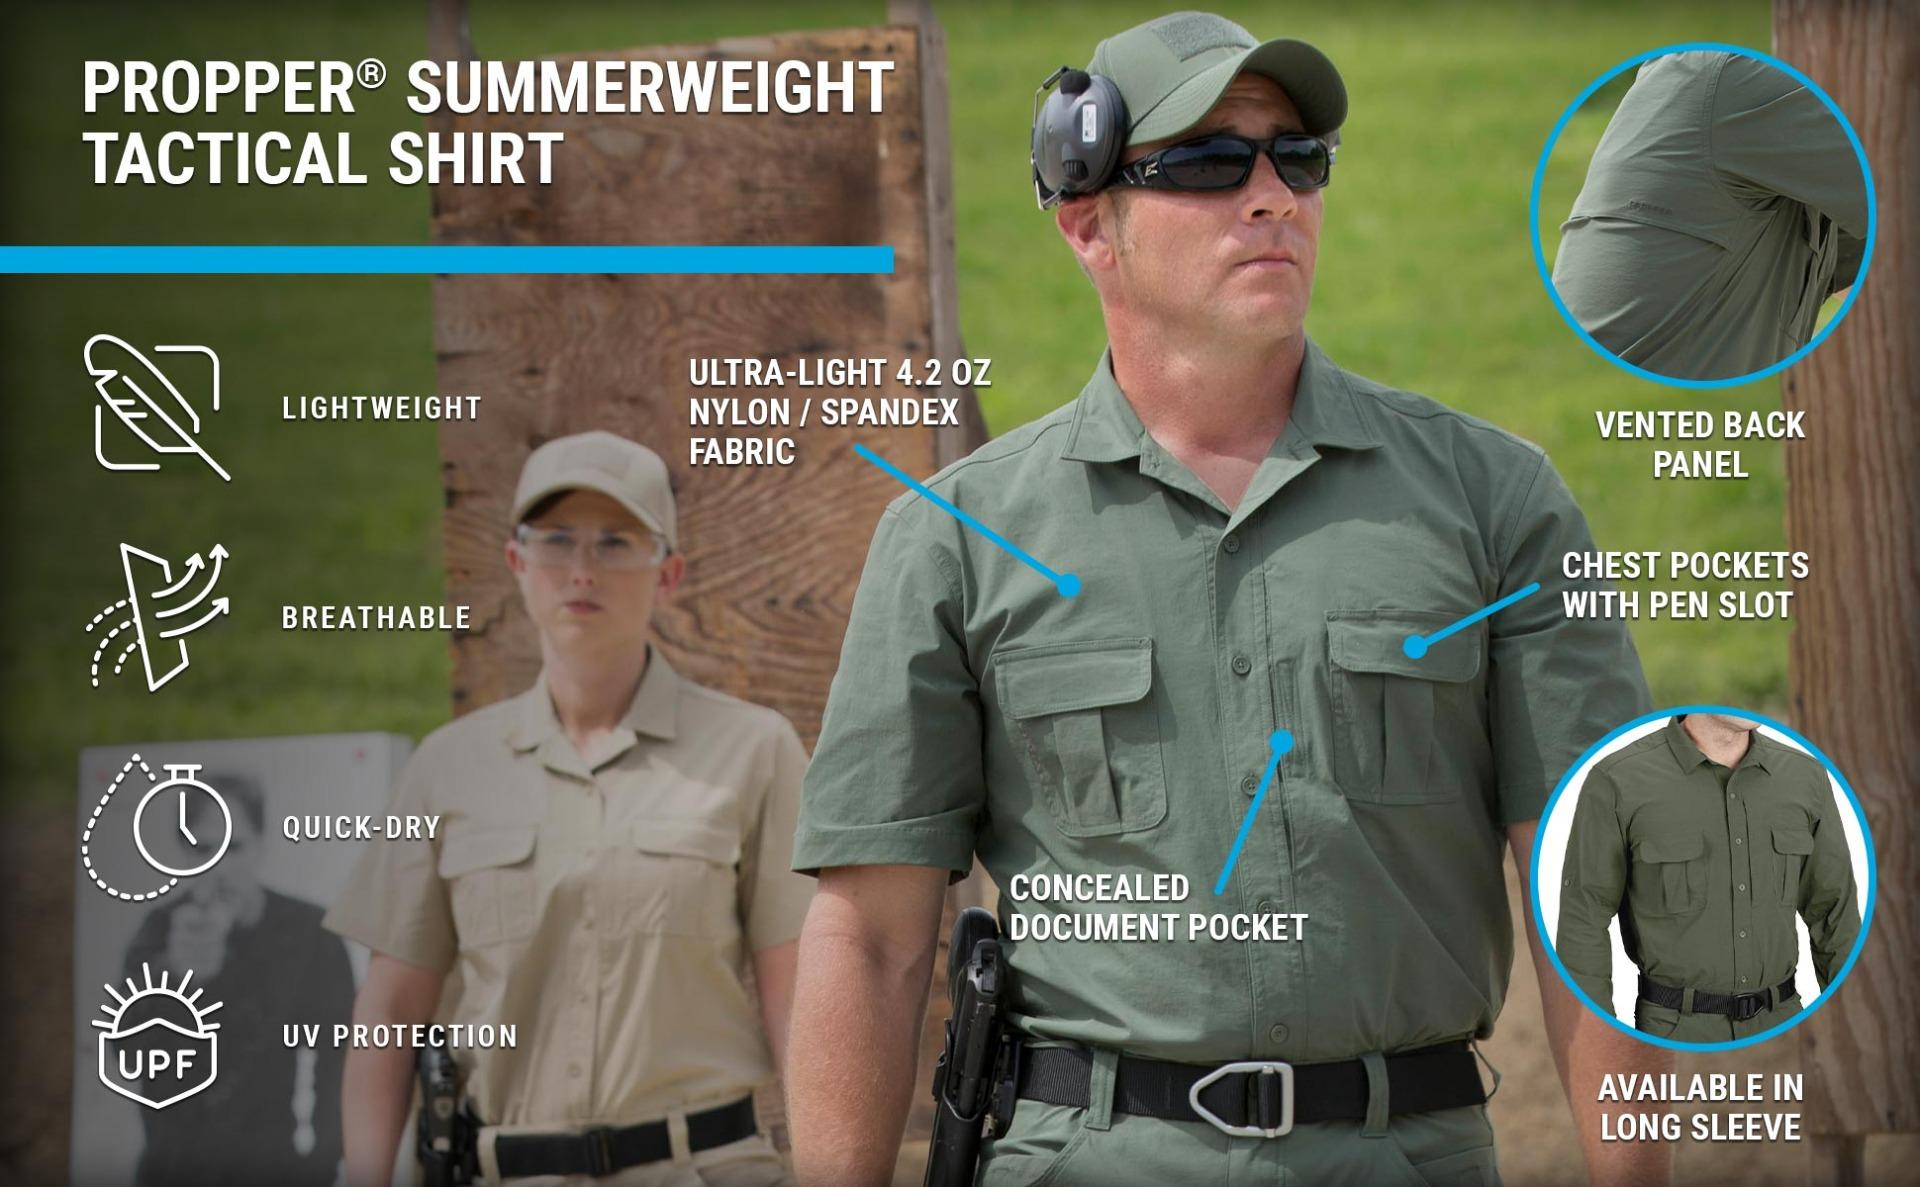 Short sleeve Summerweight olive shirt with air vents, breathable lightweight material, UV protection on hot day at range